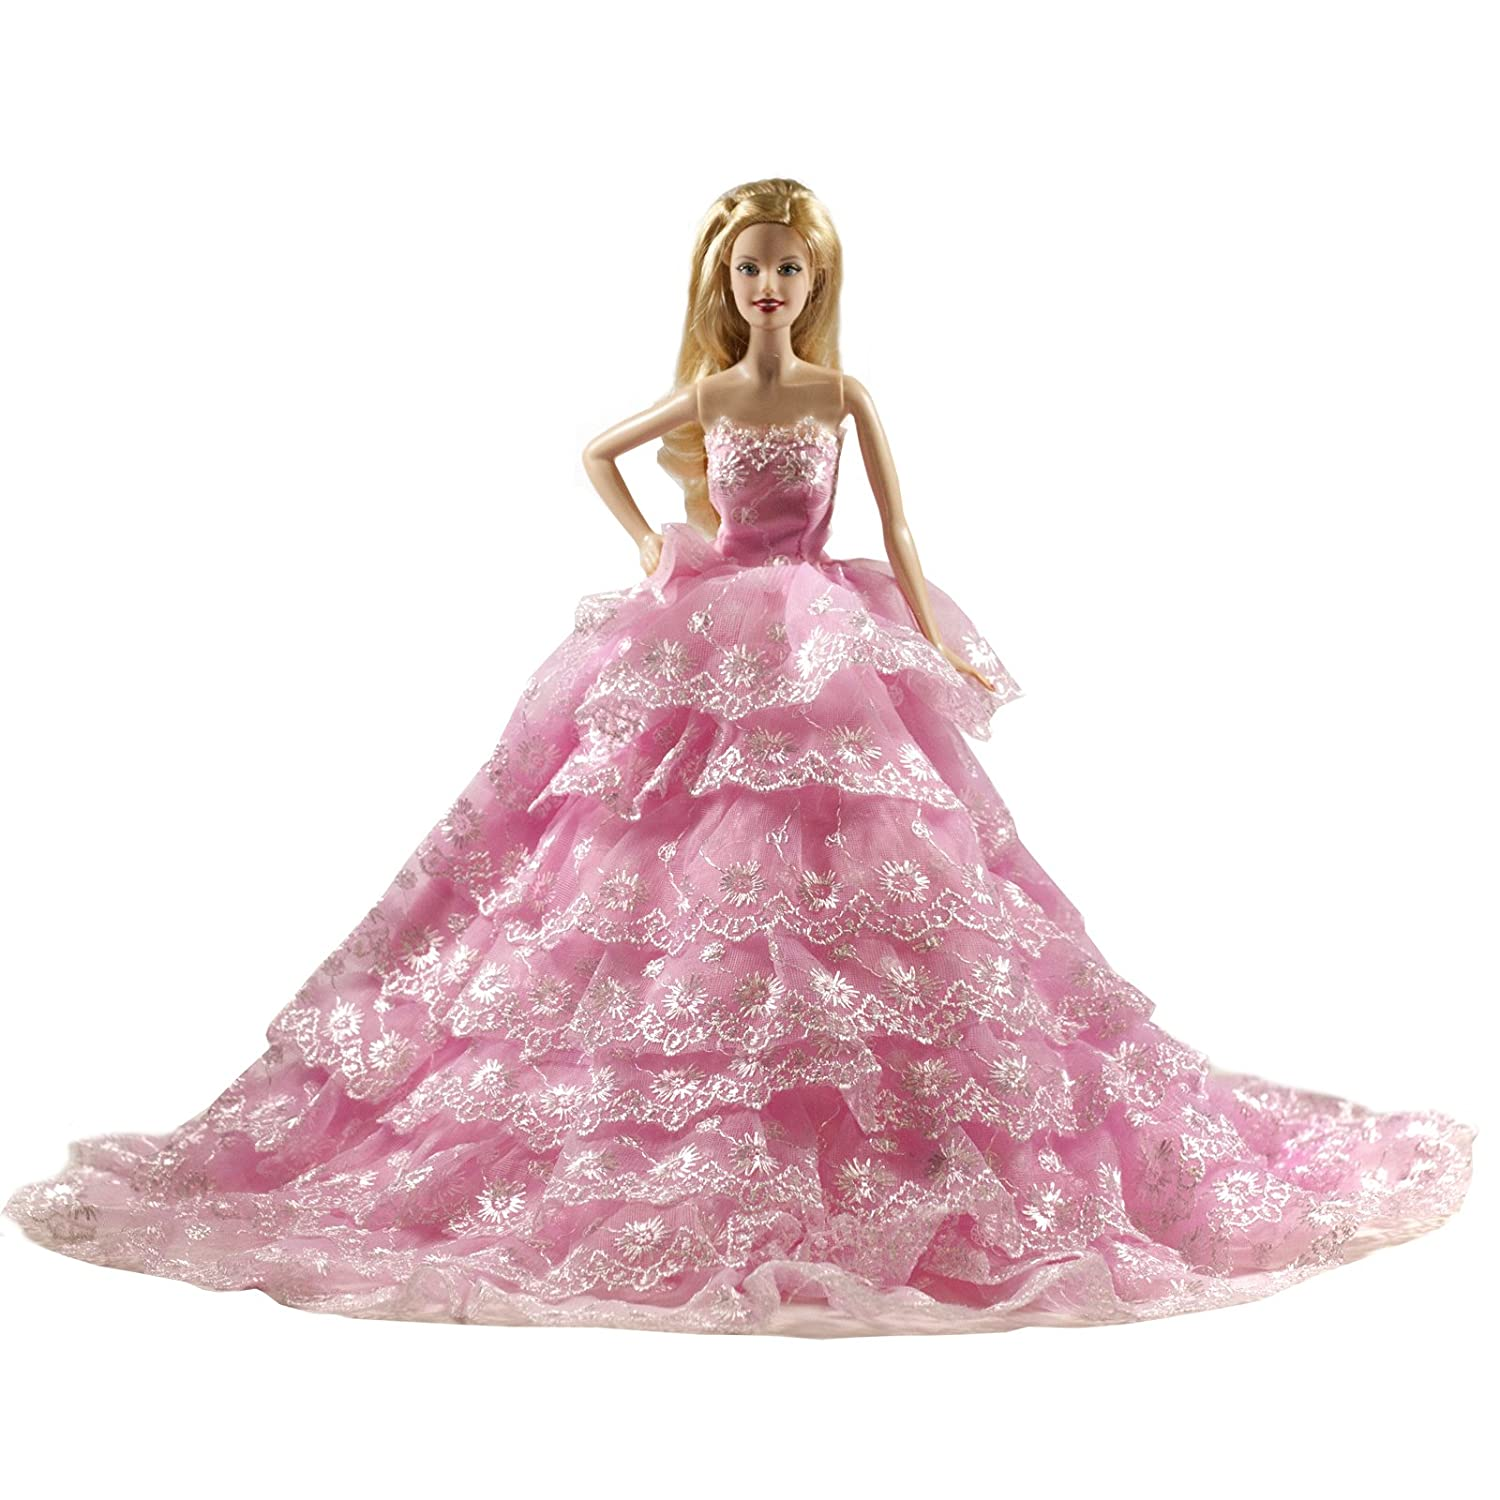 Barbie Romantic Ball Gown Strapless Layers of Organza Pink Wedding Dress